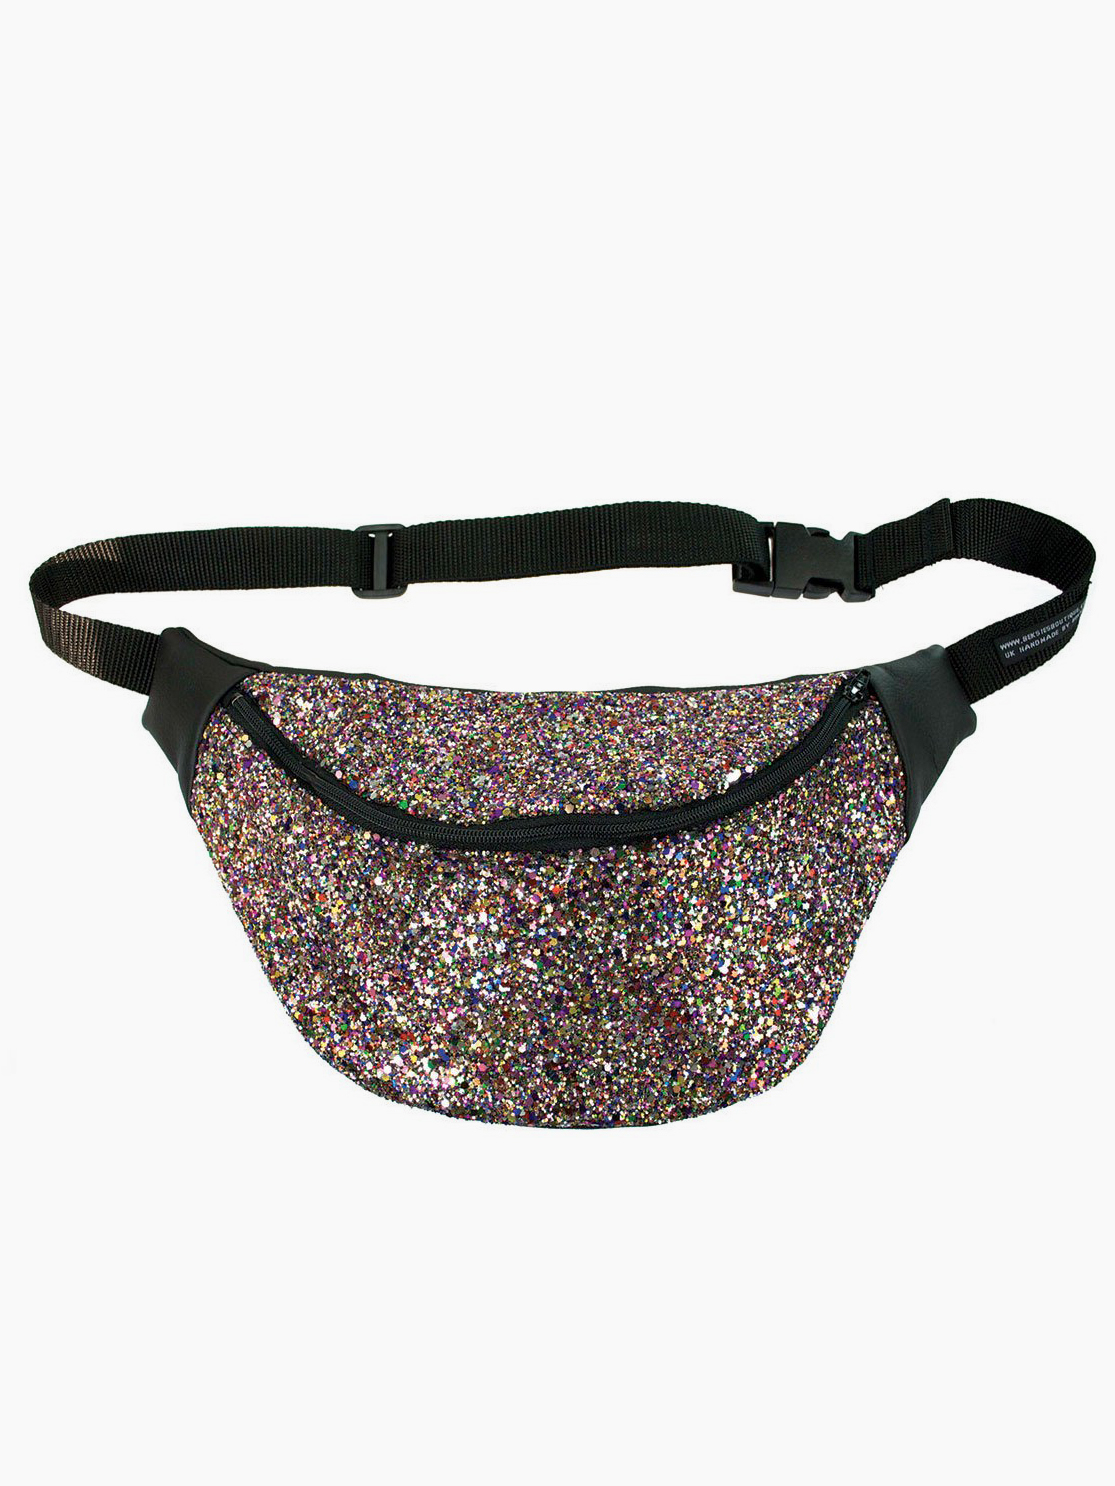 Disco Rainbow Glitter Fanny Pack from Beksie's Boutique - Sparkling Sustainable Fashion Statement Pieces on The Good Trade